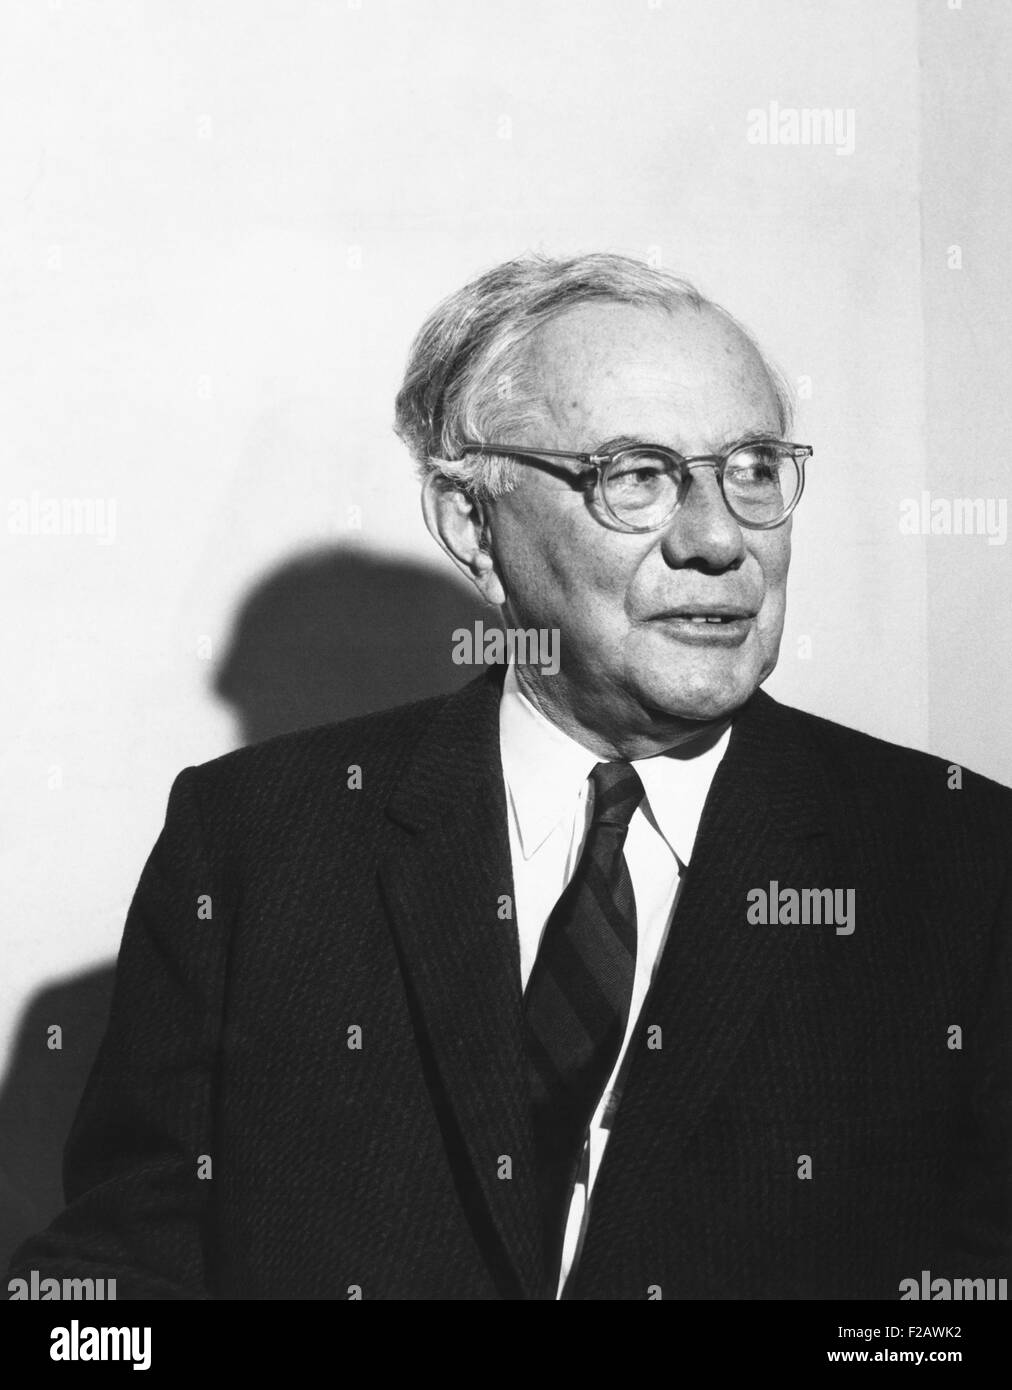 Dr. Paul J. Tillich, German American Christian existentialist philosopher and theologian. October 1969 portrait - Stock Image